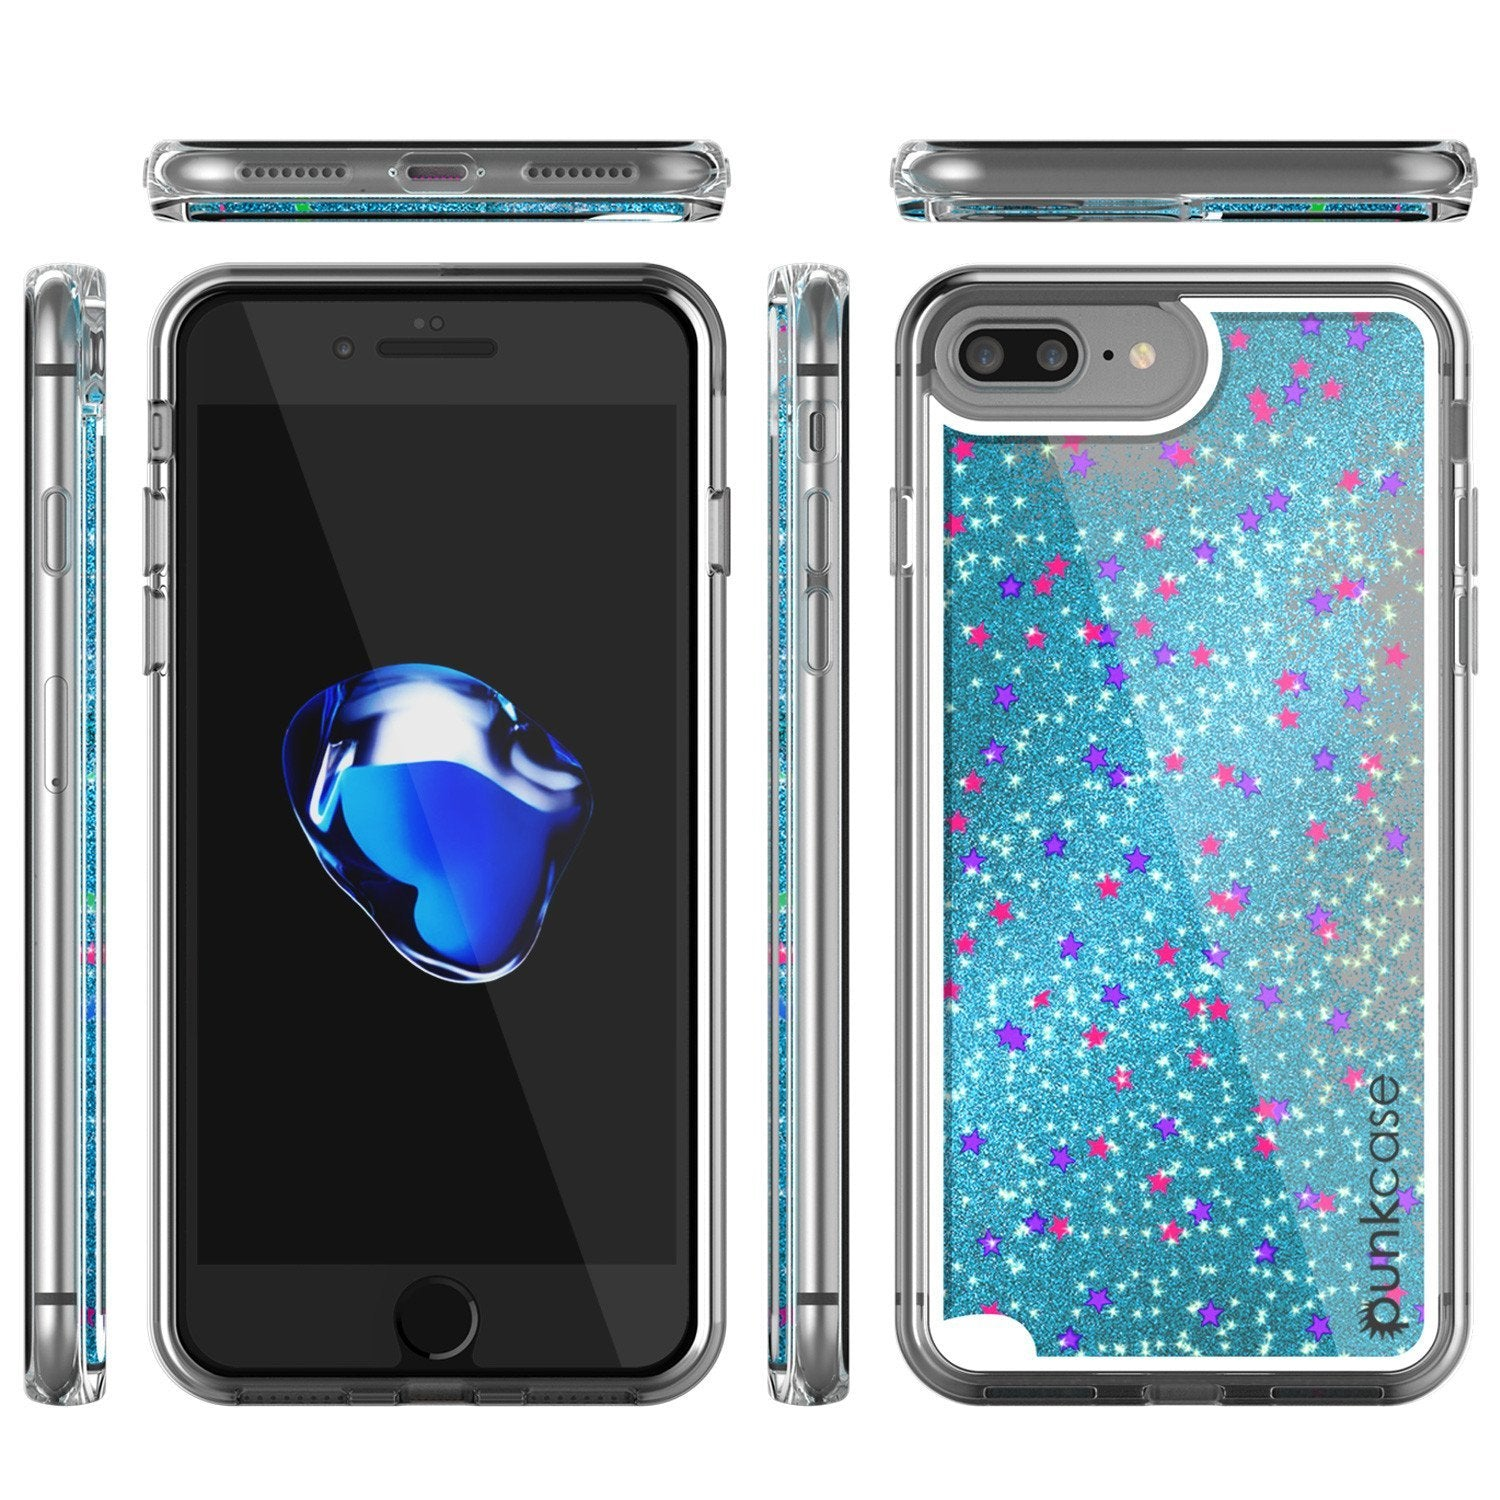 iPhone 8+ Plus Case, PunkCase LIQUID Teal Series, Protective Dual Layer Floating Glitter Cover - PunkCase NZ